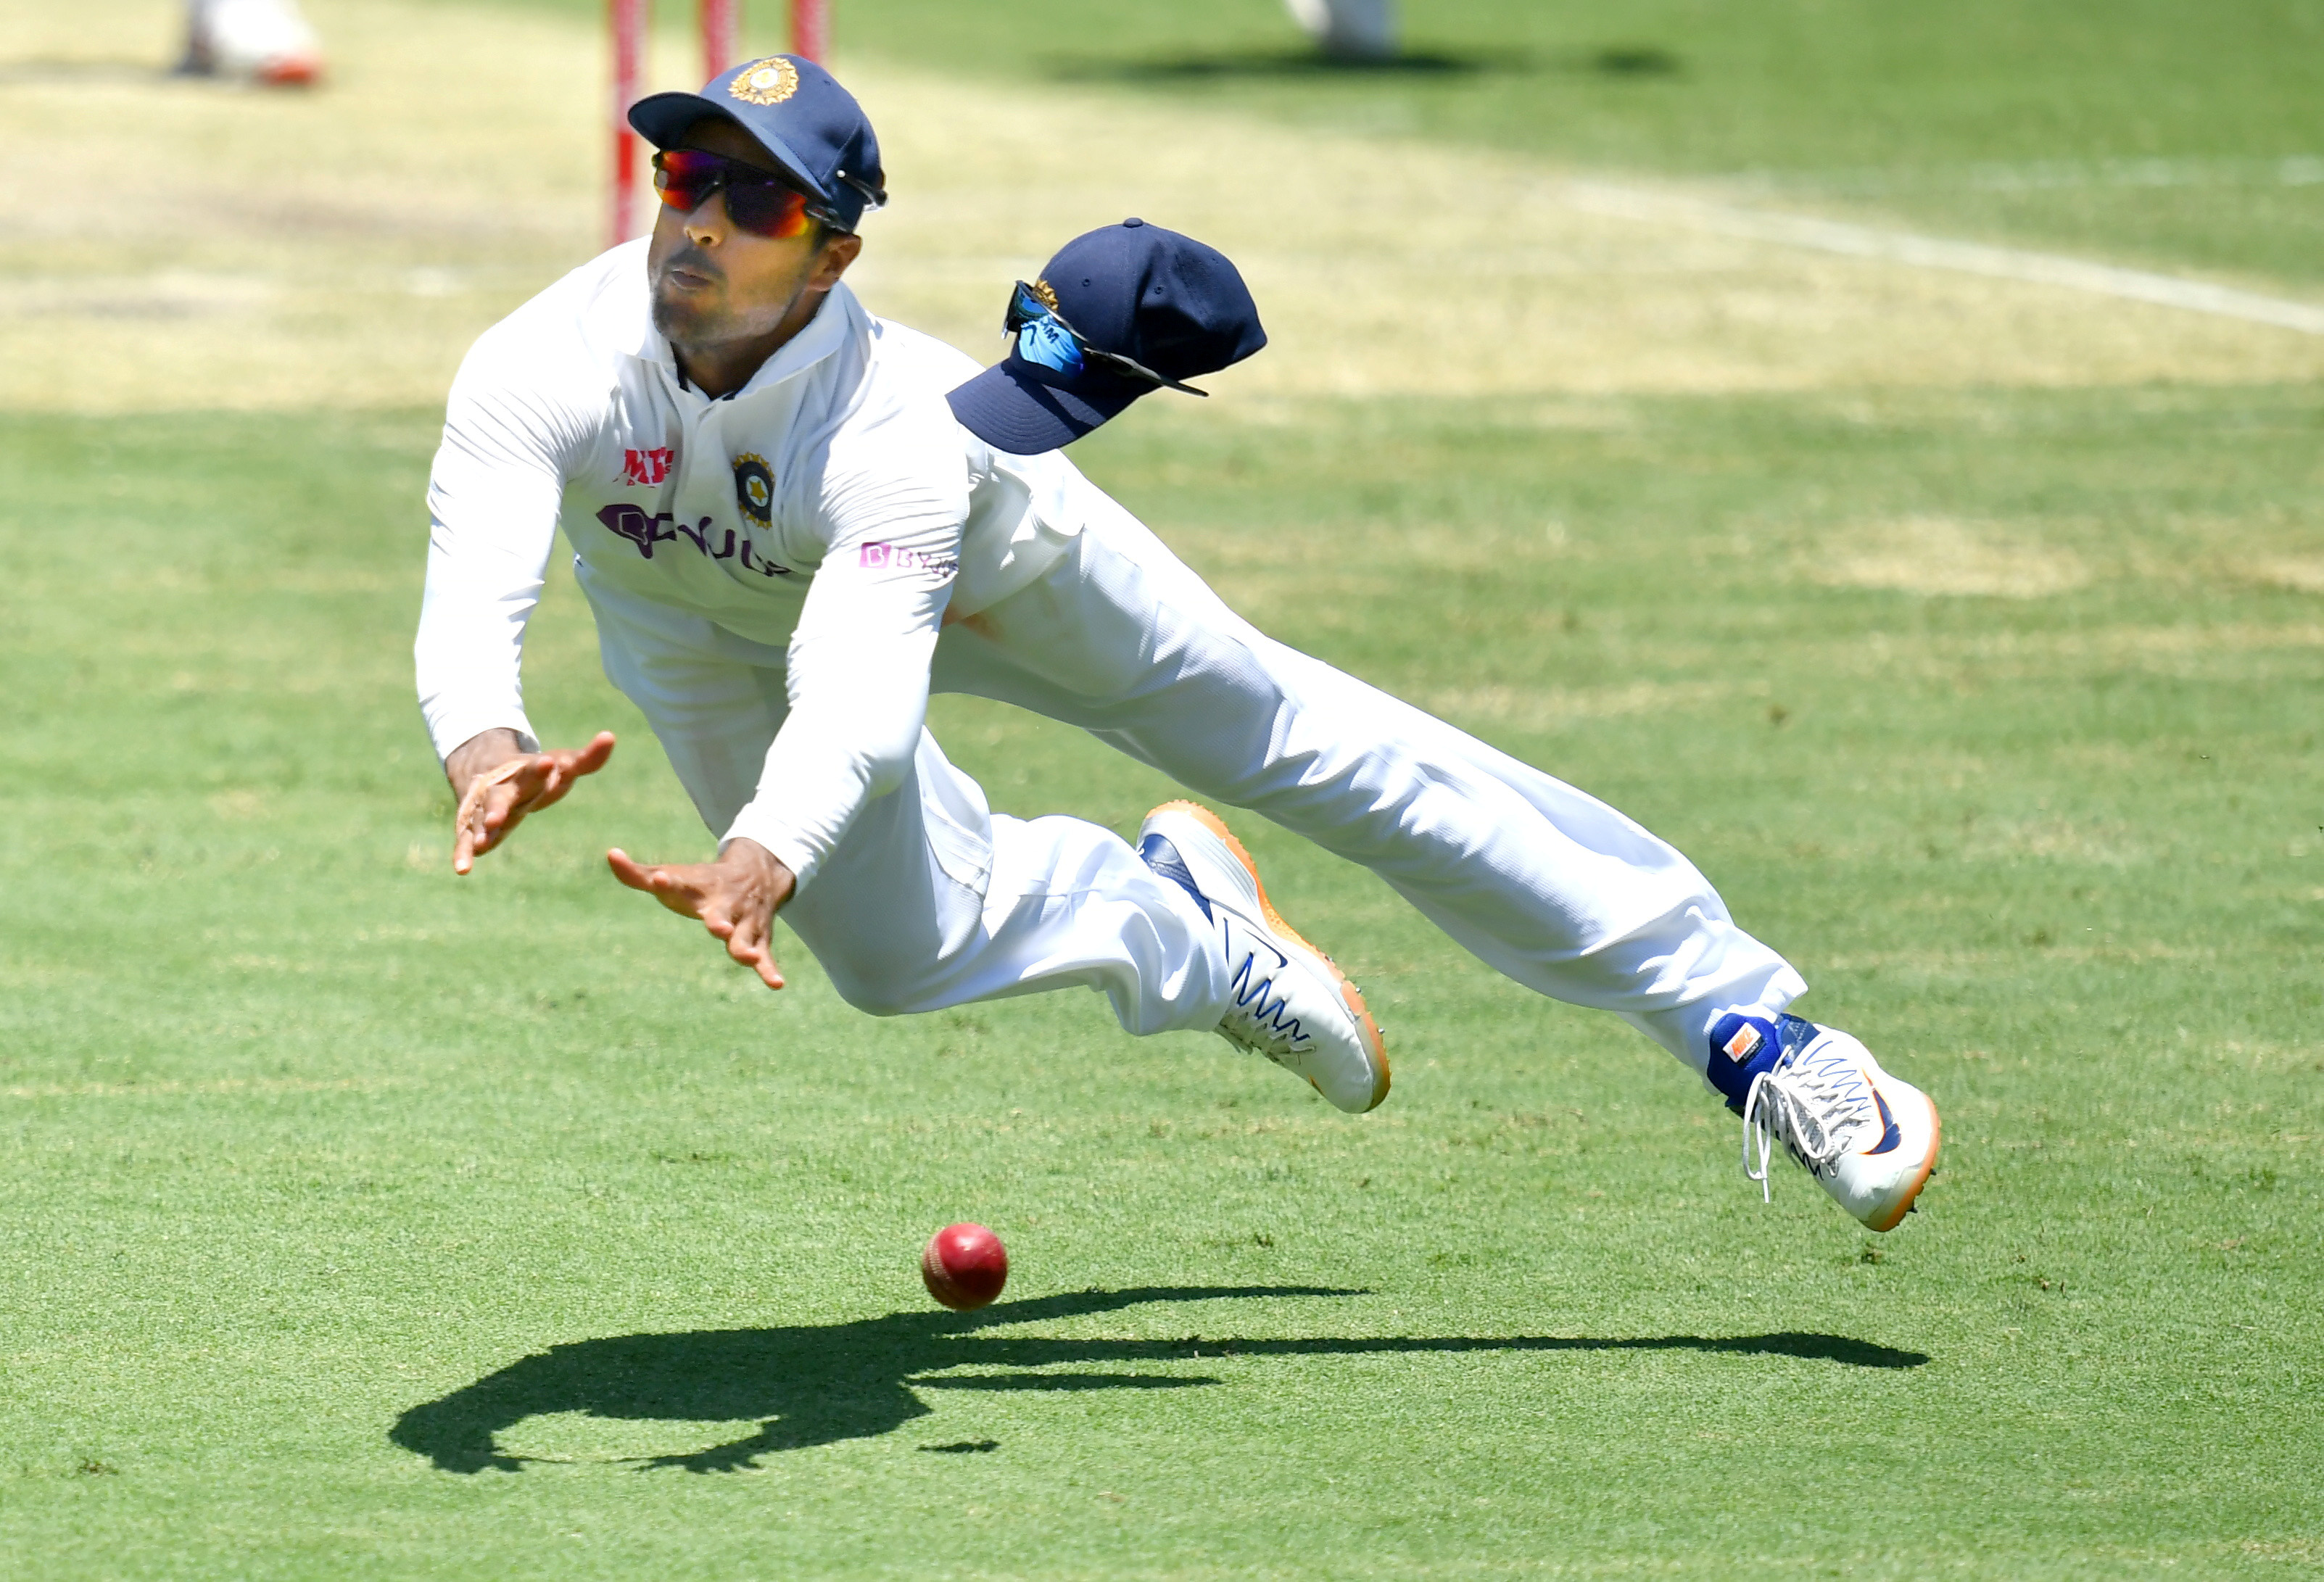 Mayank Agarwal of India drops a catch off the batting of Mitchell Starc of Australia during day two of the fourth test match between Australia and India at the Gabba in Brisbane, Australia, January 16, 2021. AAP Image/Darren England via REUTERS  ATTENTION EDITORS - THIS IMAGE WAS PROVIDED BY A THIRD PARTY. NO RESALES. NO ARCHIVE. AUSTRALIA OUT. NEW ZEALAND OUT     TPX IMAGES OF THE DAY